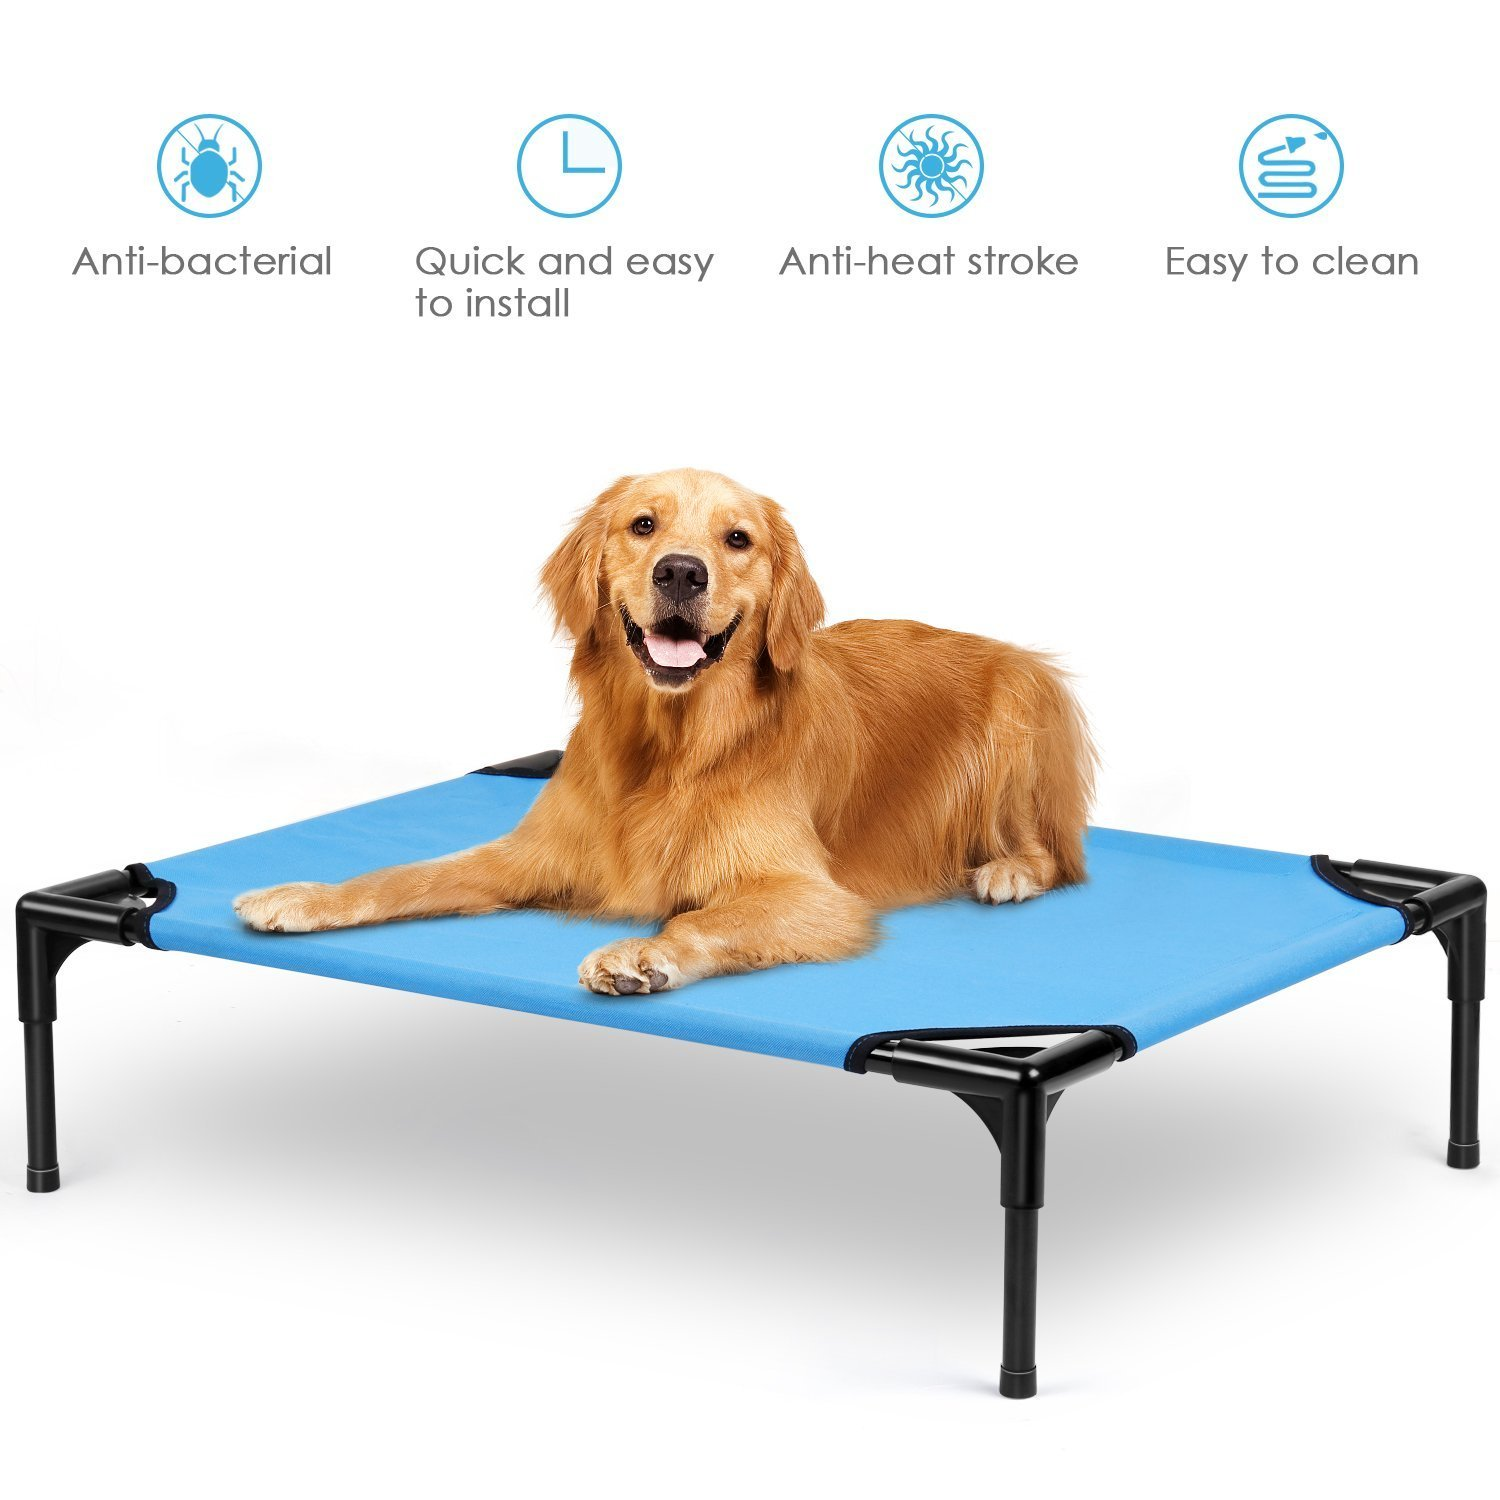 amzdeal Dog Bed Elevated Dog Bed Enhanced Washable Dog Cot Cat Bed Puppy Beds for Spring Summer